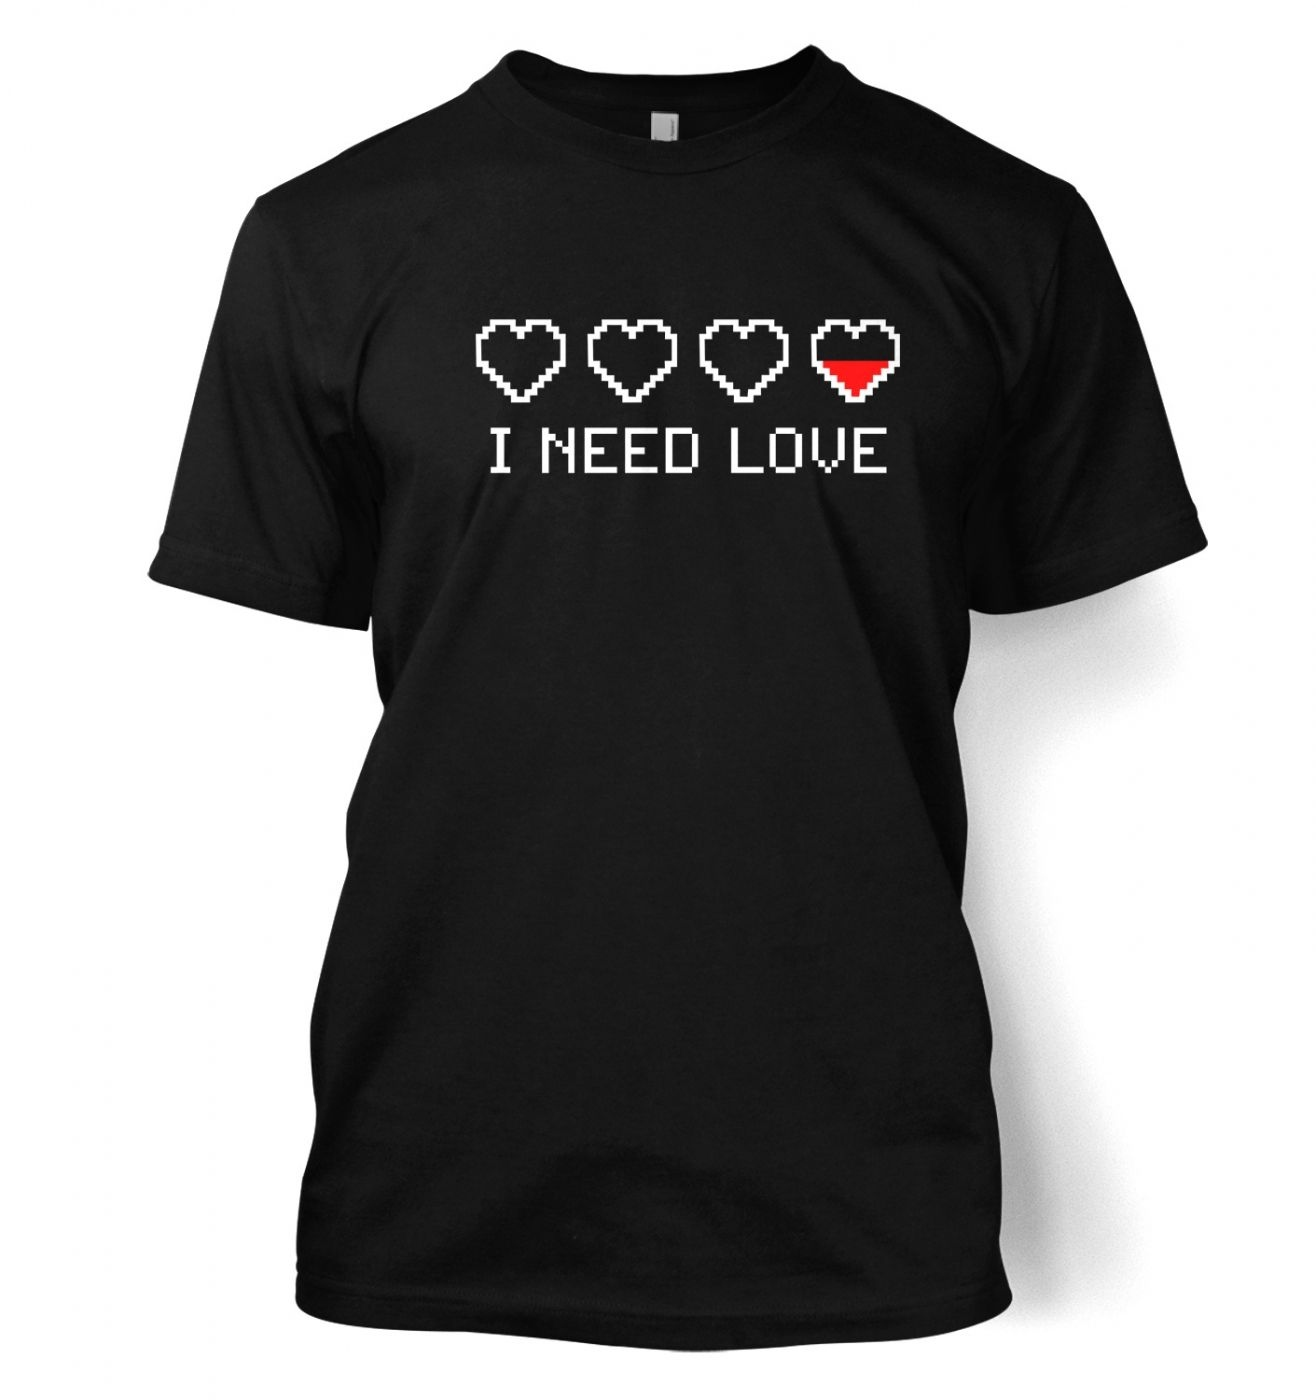 Pixelated I Need Love men's t-shirt